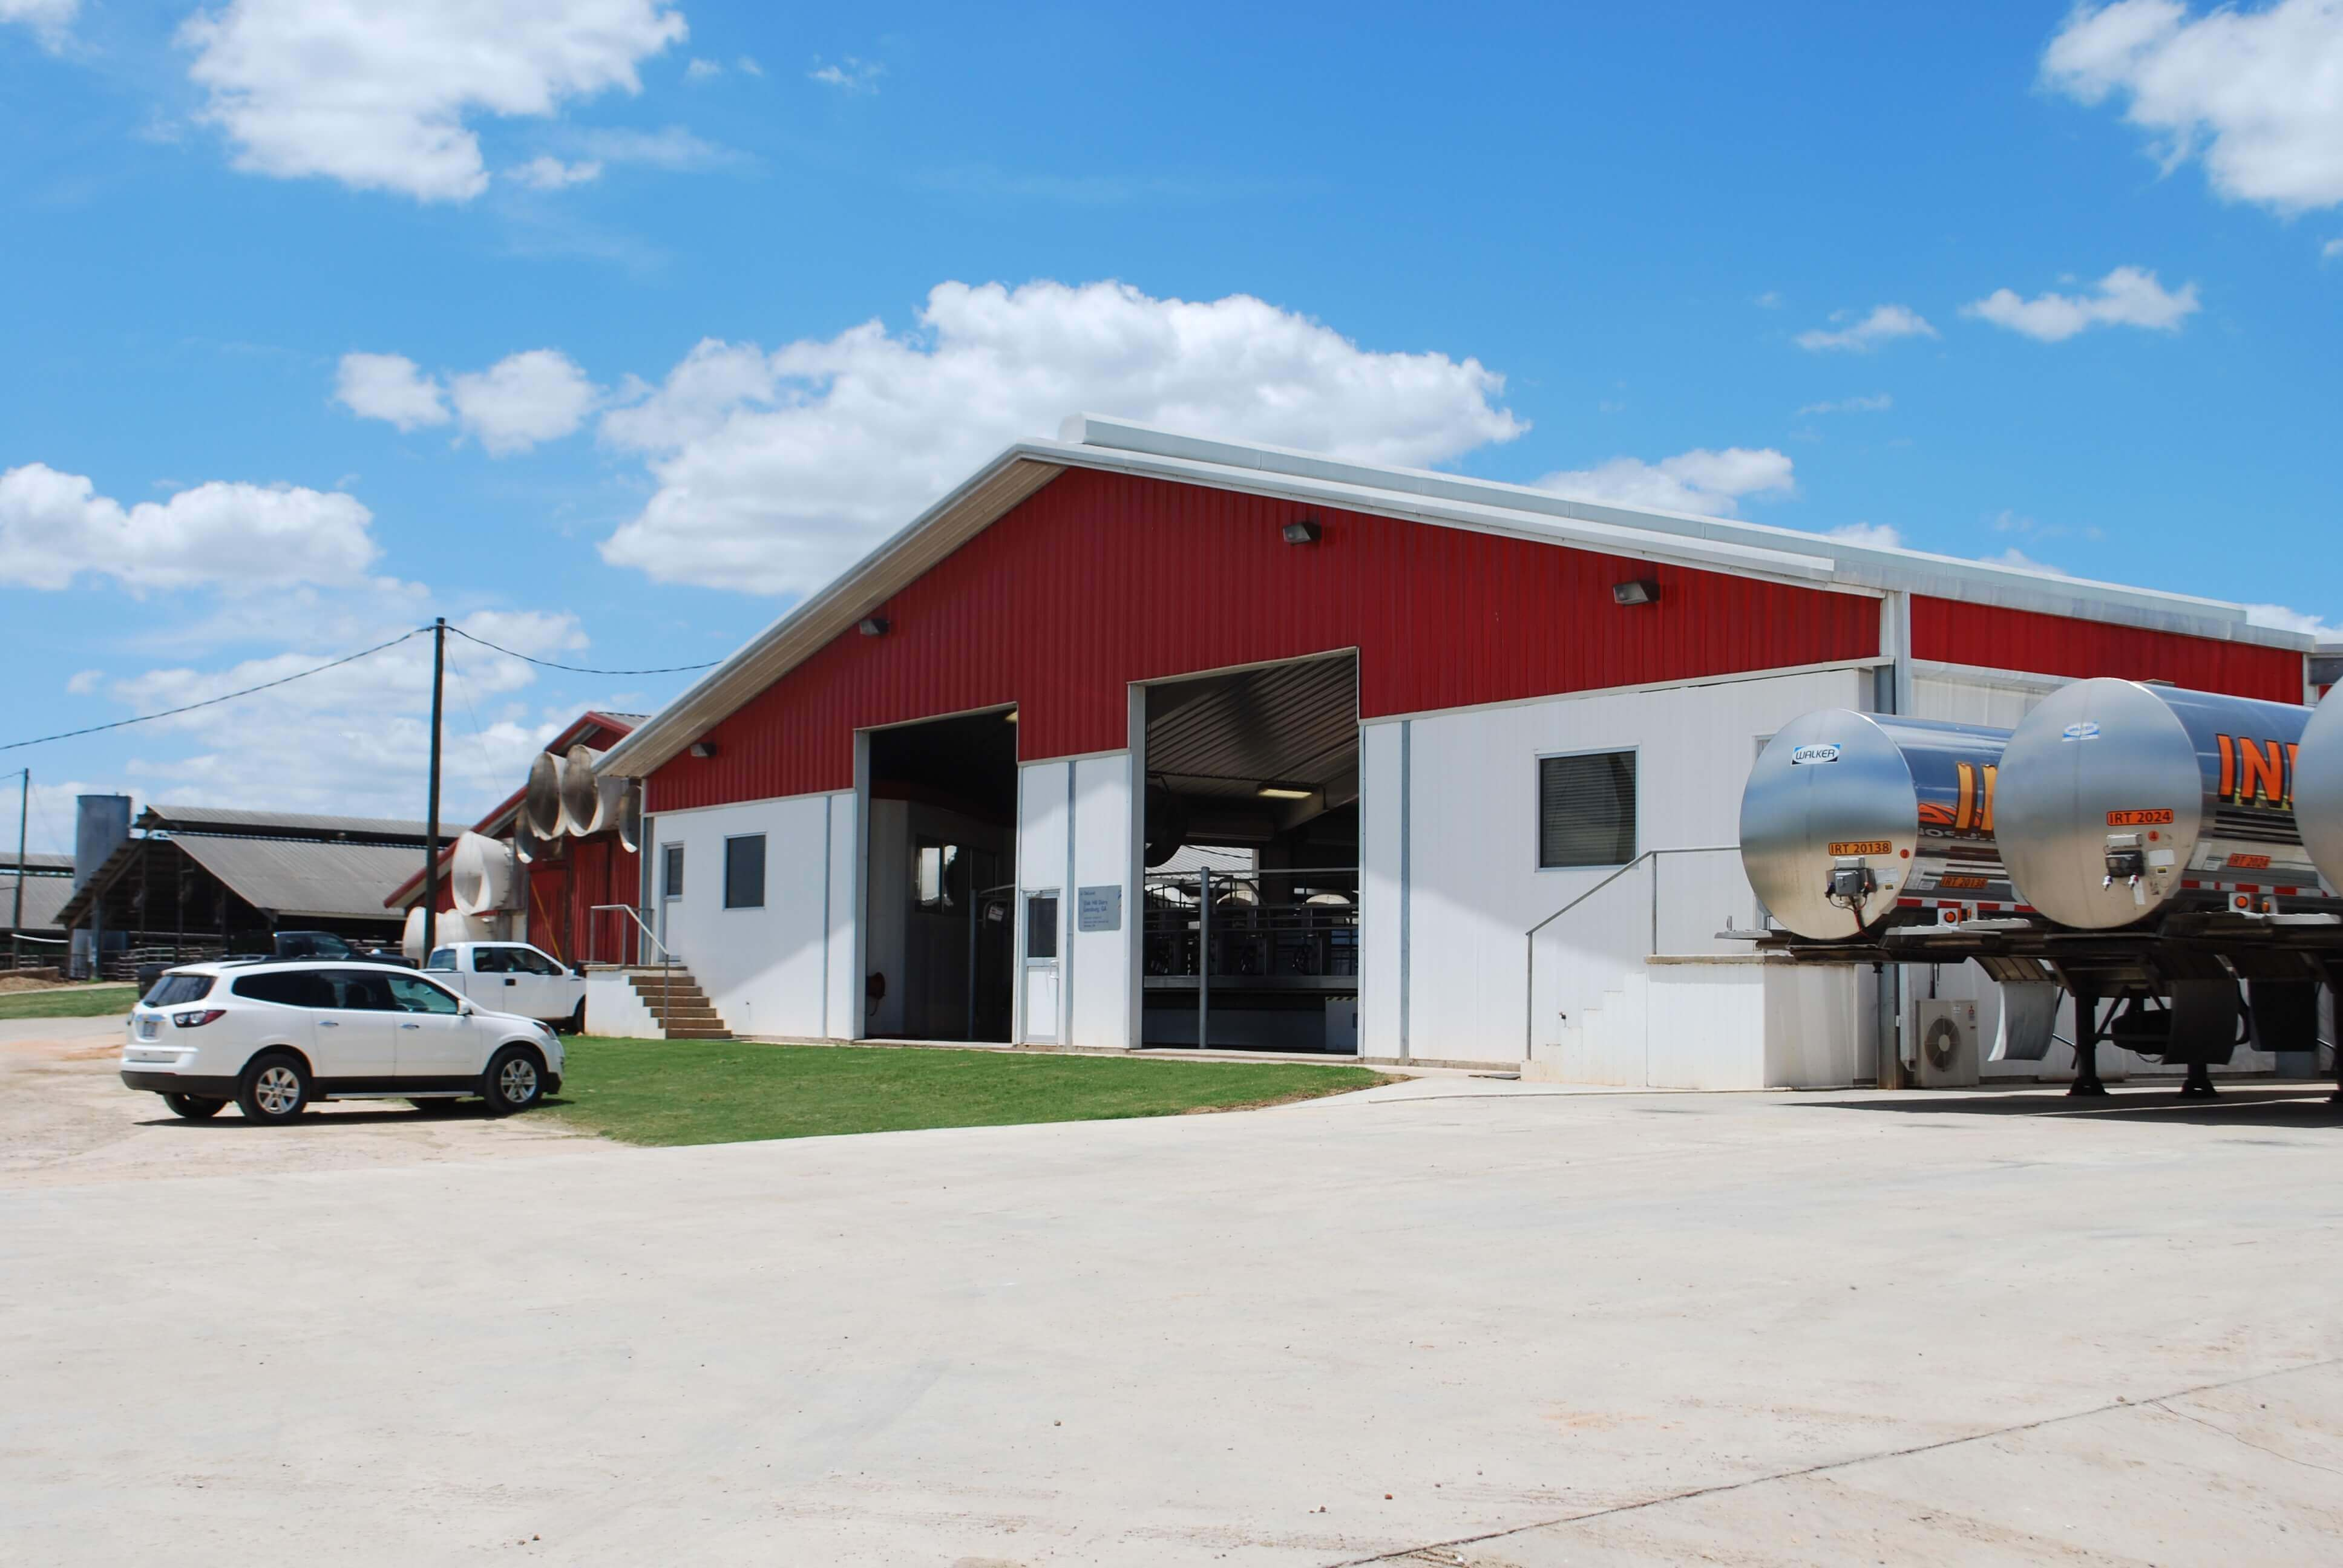 Sheds And Shelters : Metal agricultural commercial buildings sheds and shelters